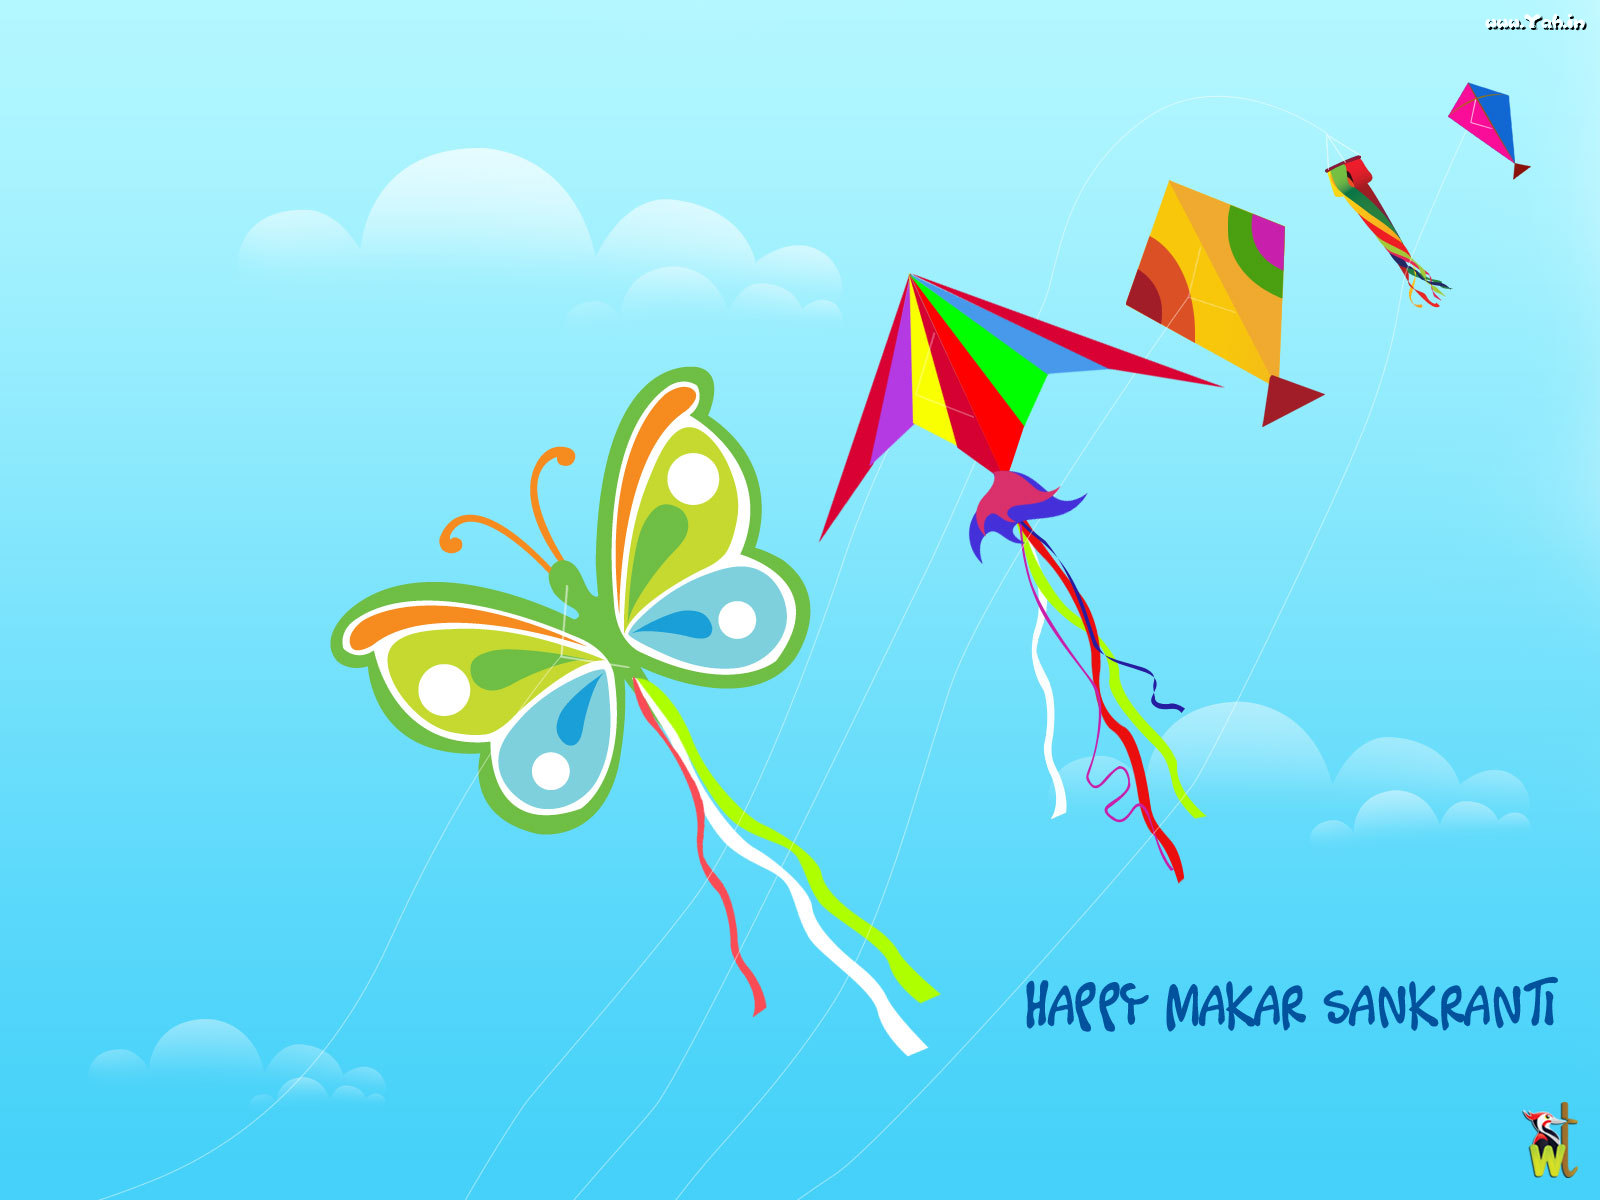 Kite Happy makar sankranti wallpaper Urban Art Wallpaper 1600x1200